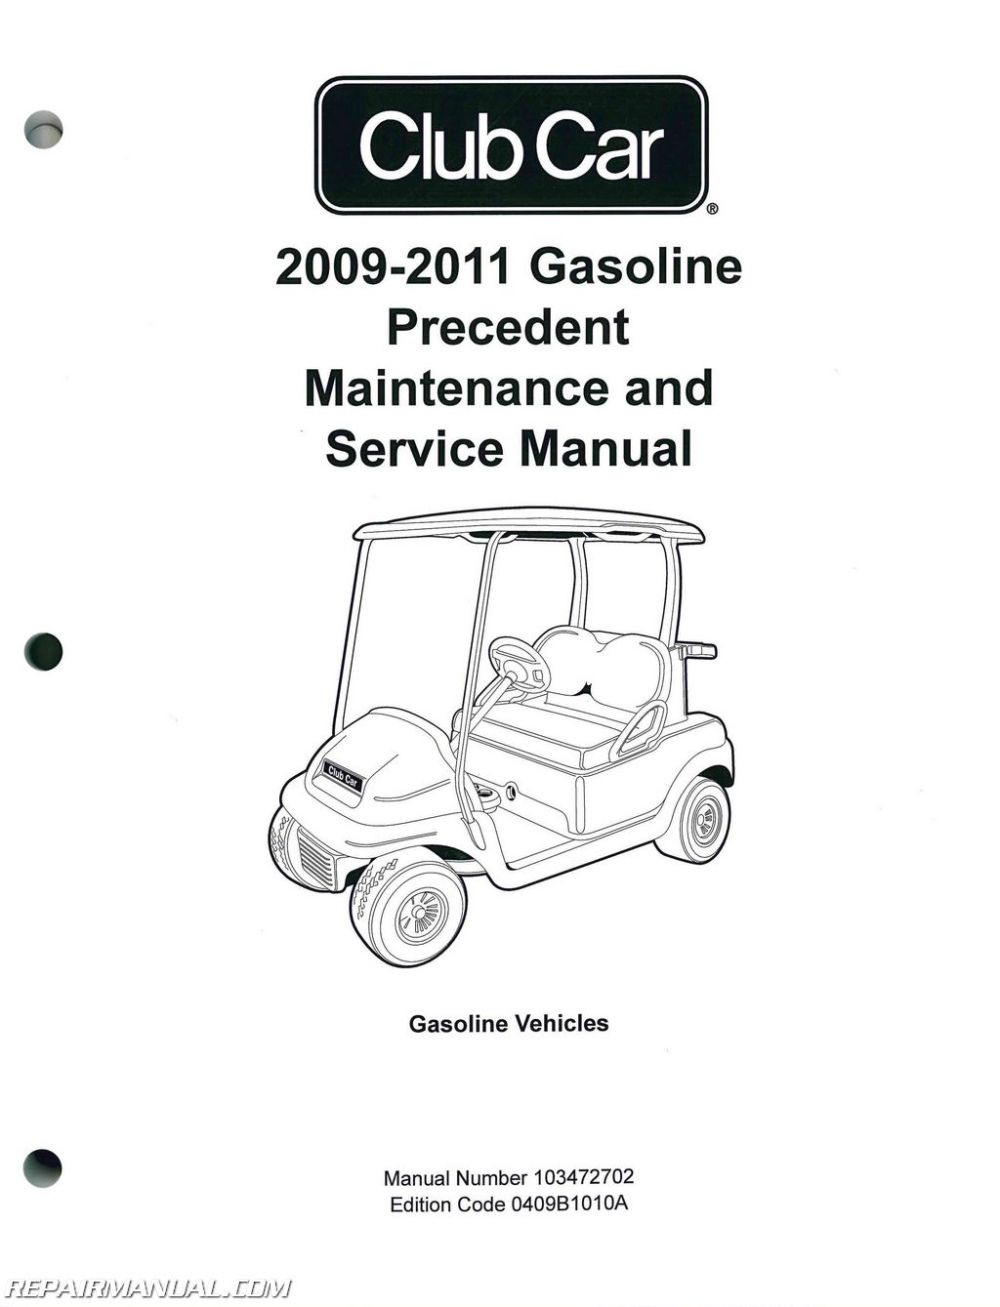 medium resolution of club car manual wire diagrams wiring diagram meta 2009 2011 club car gasoline precedent maintenance and